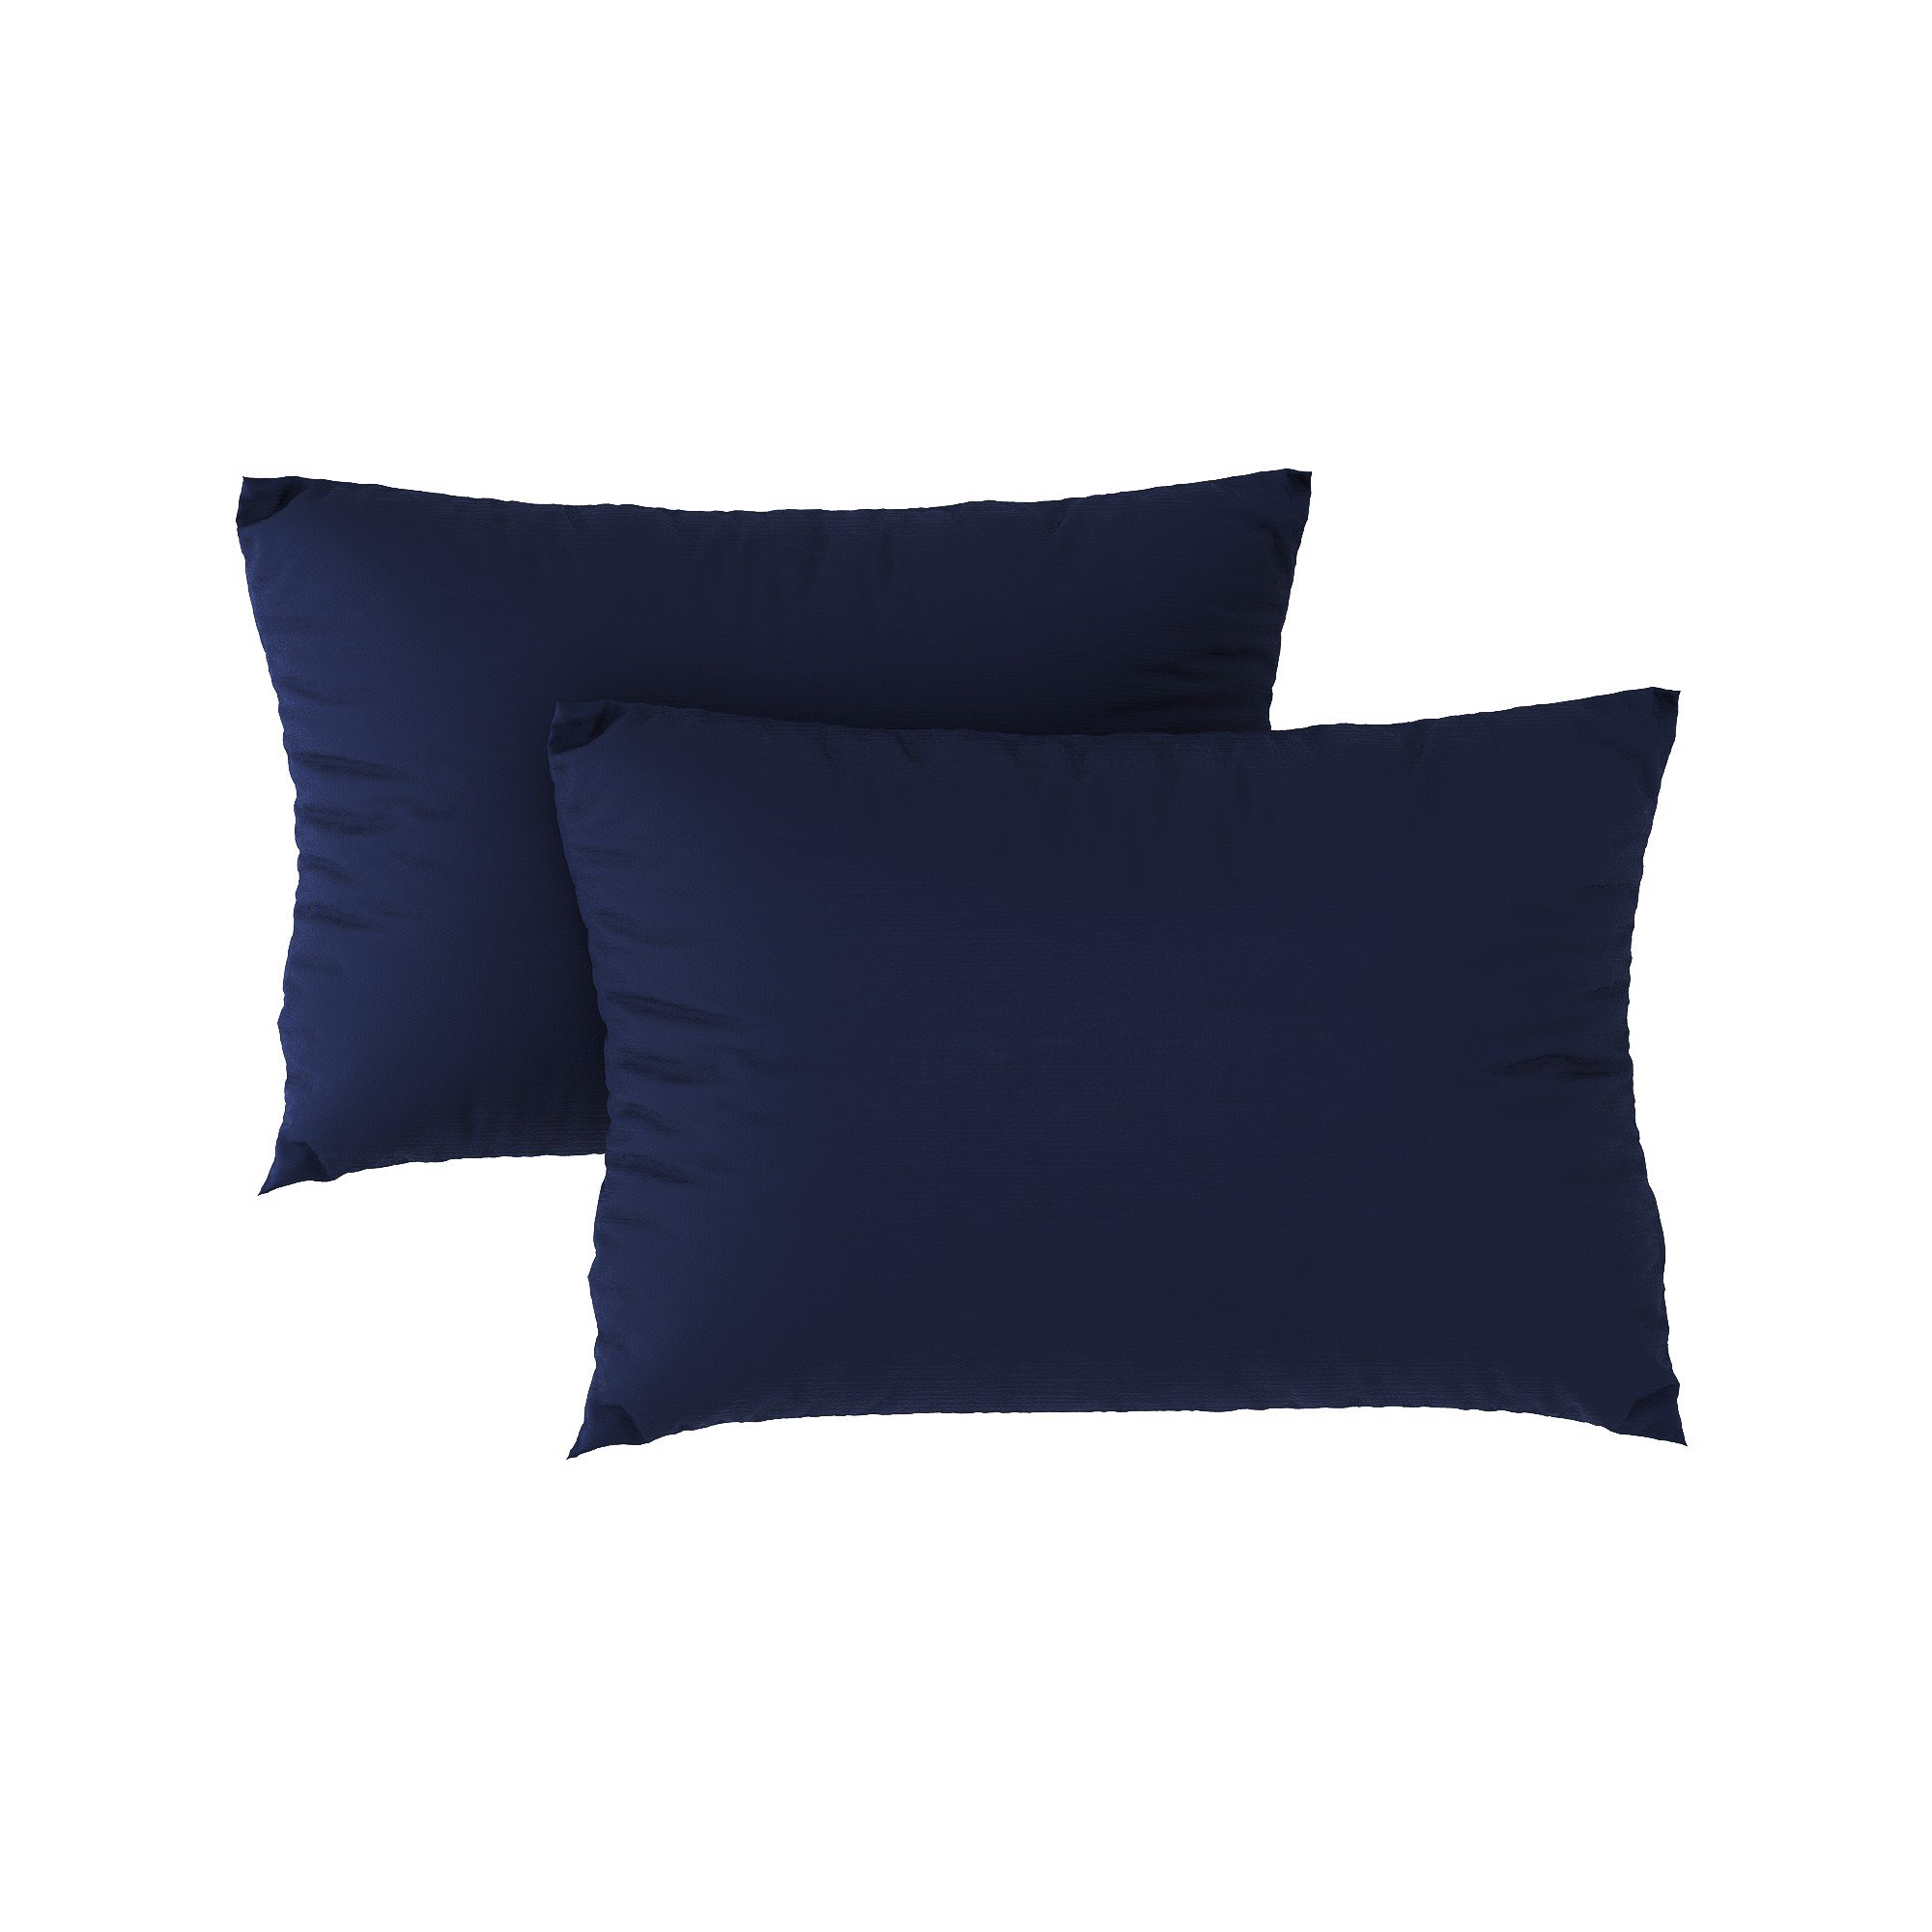 Premium pillow case 11 Royal blue (2pcs)